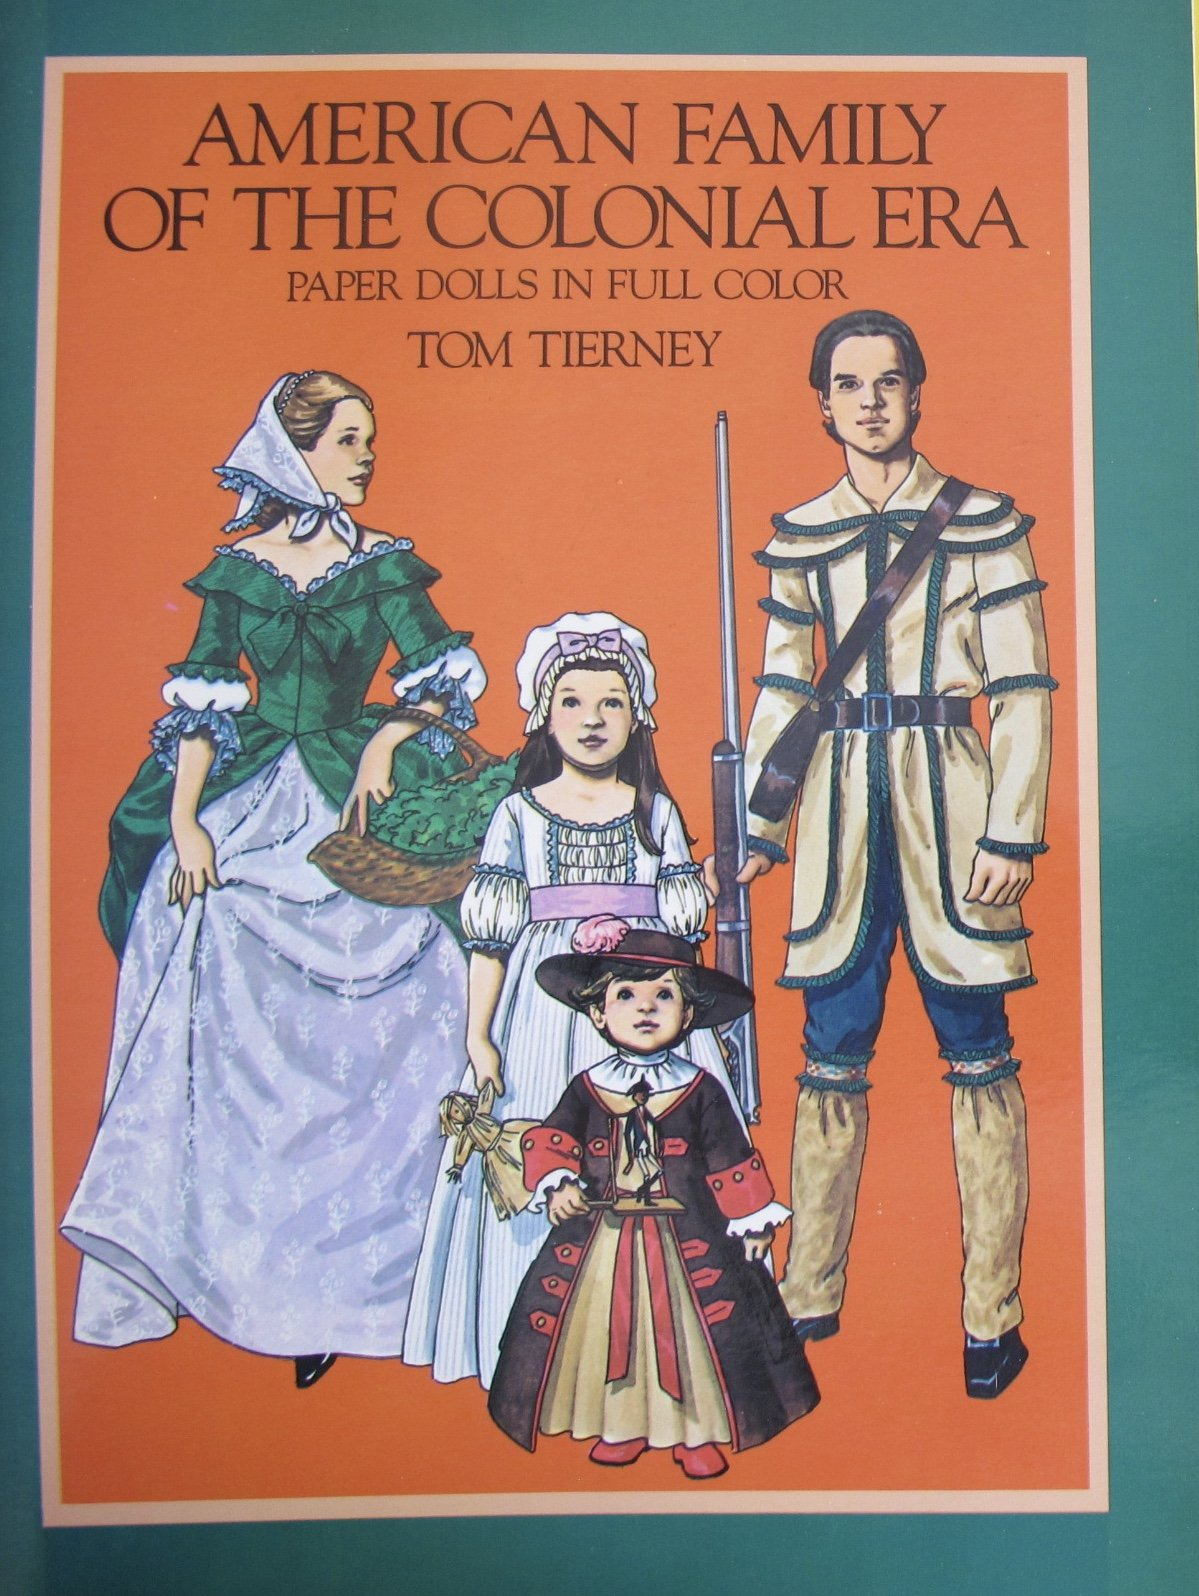 Tom Tierney AMERICAN FAMILY of The COLONIAL ERA PAPER DOLLS Book (UNCUT) in Full Color w 8 Card Stock DOLLS & 32 Card Stock COSTUMES (1983 Dover) by Unknown (Image #1)